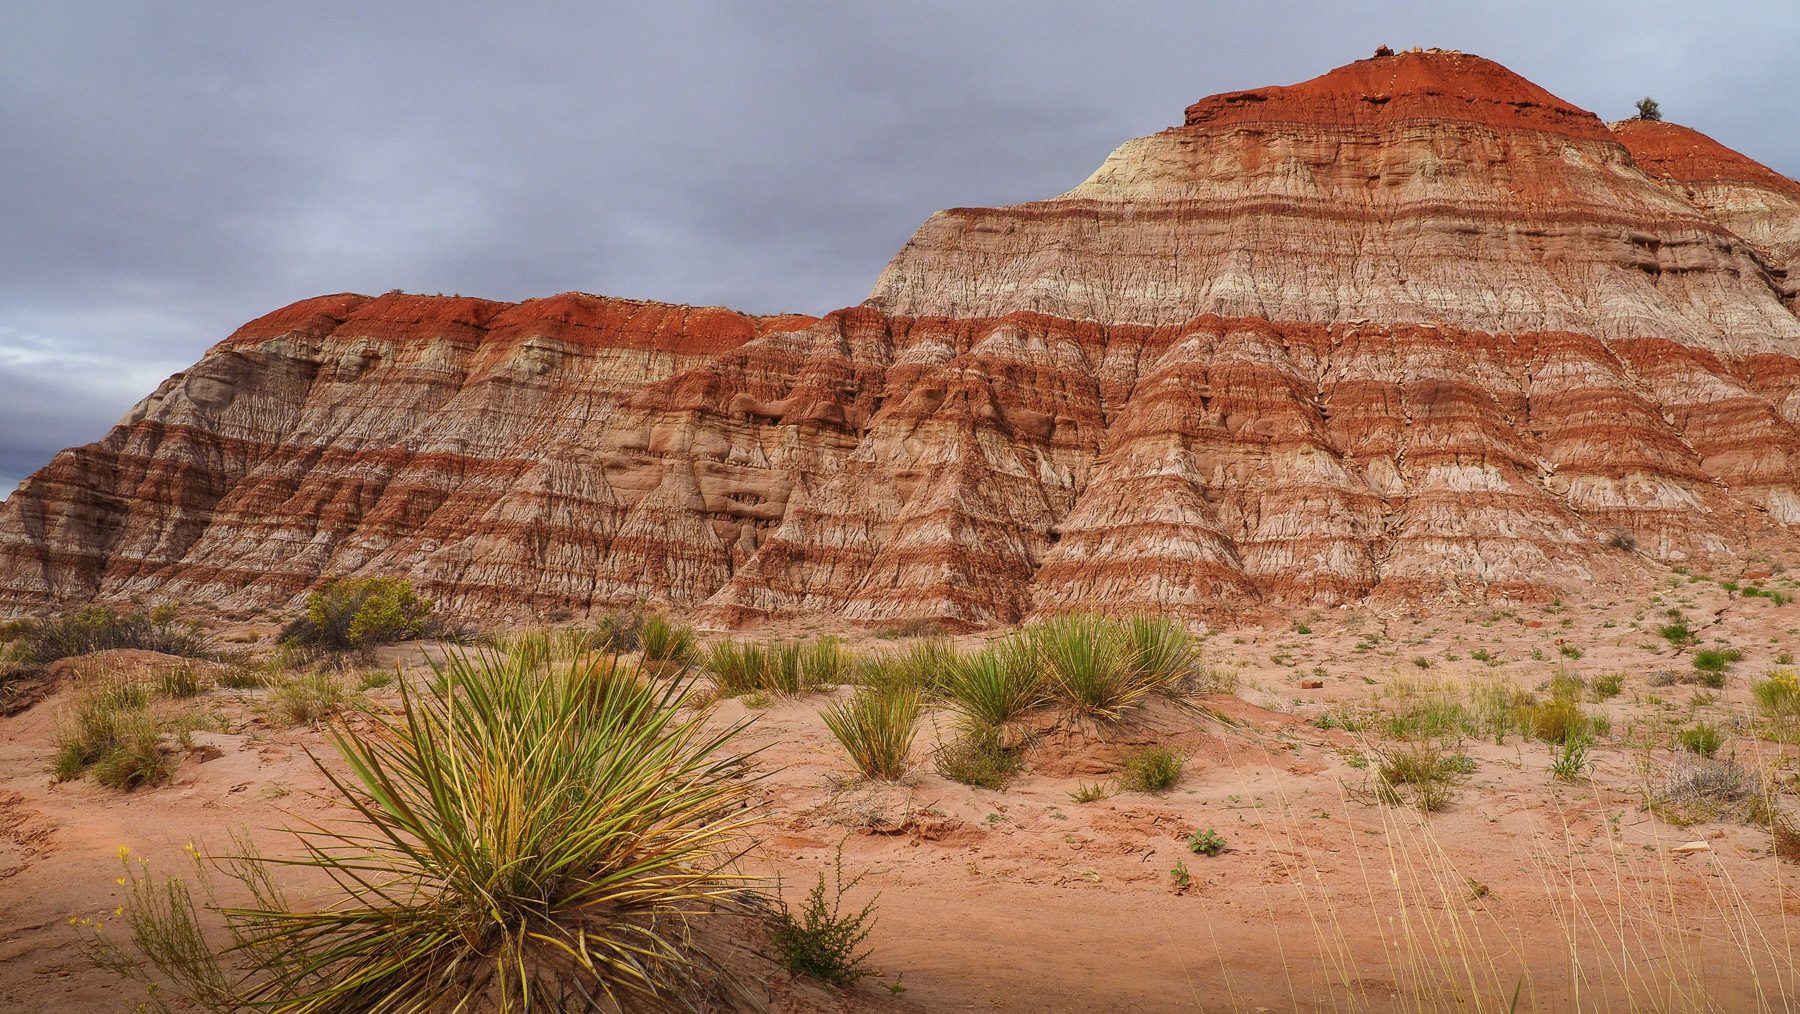 Lohnender Abstecher in den Paria Canyon